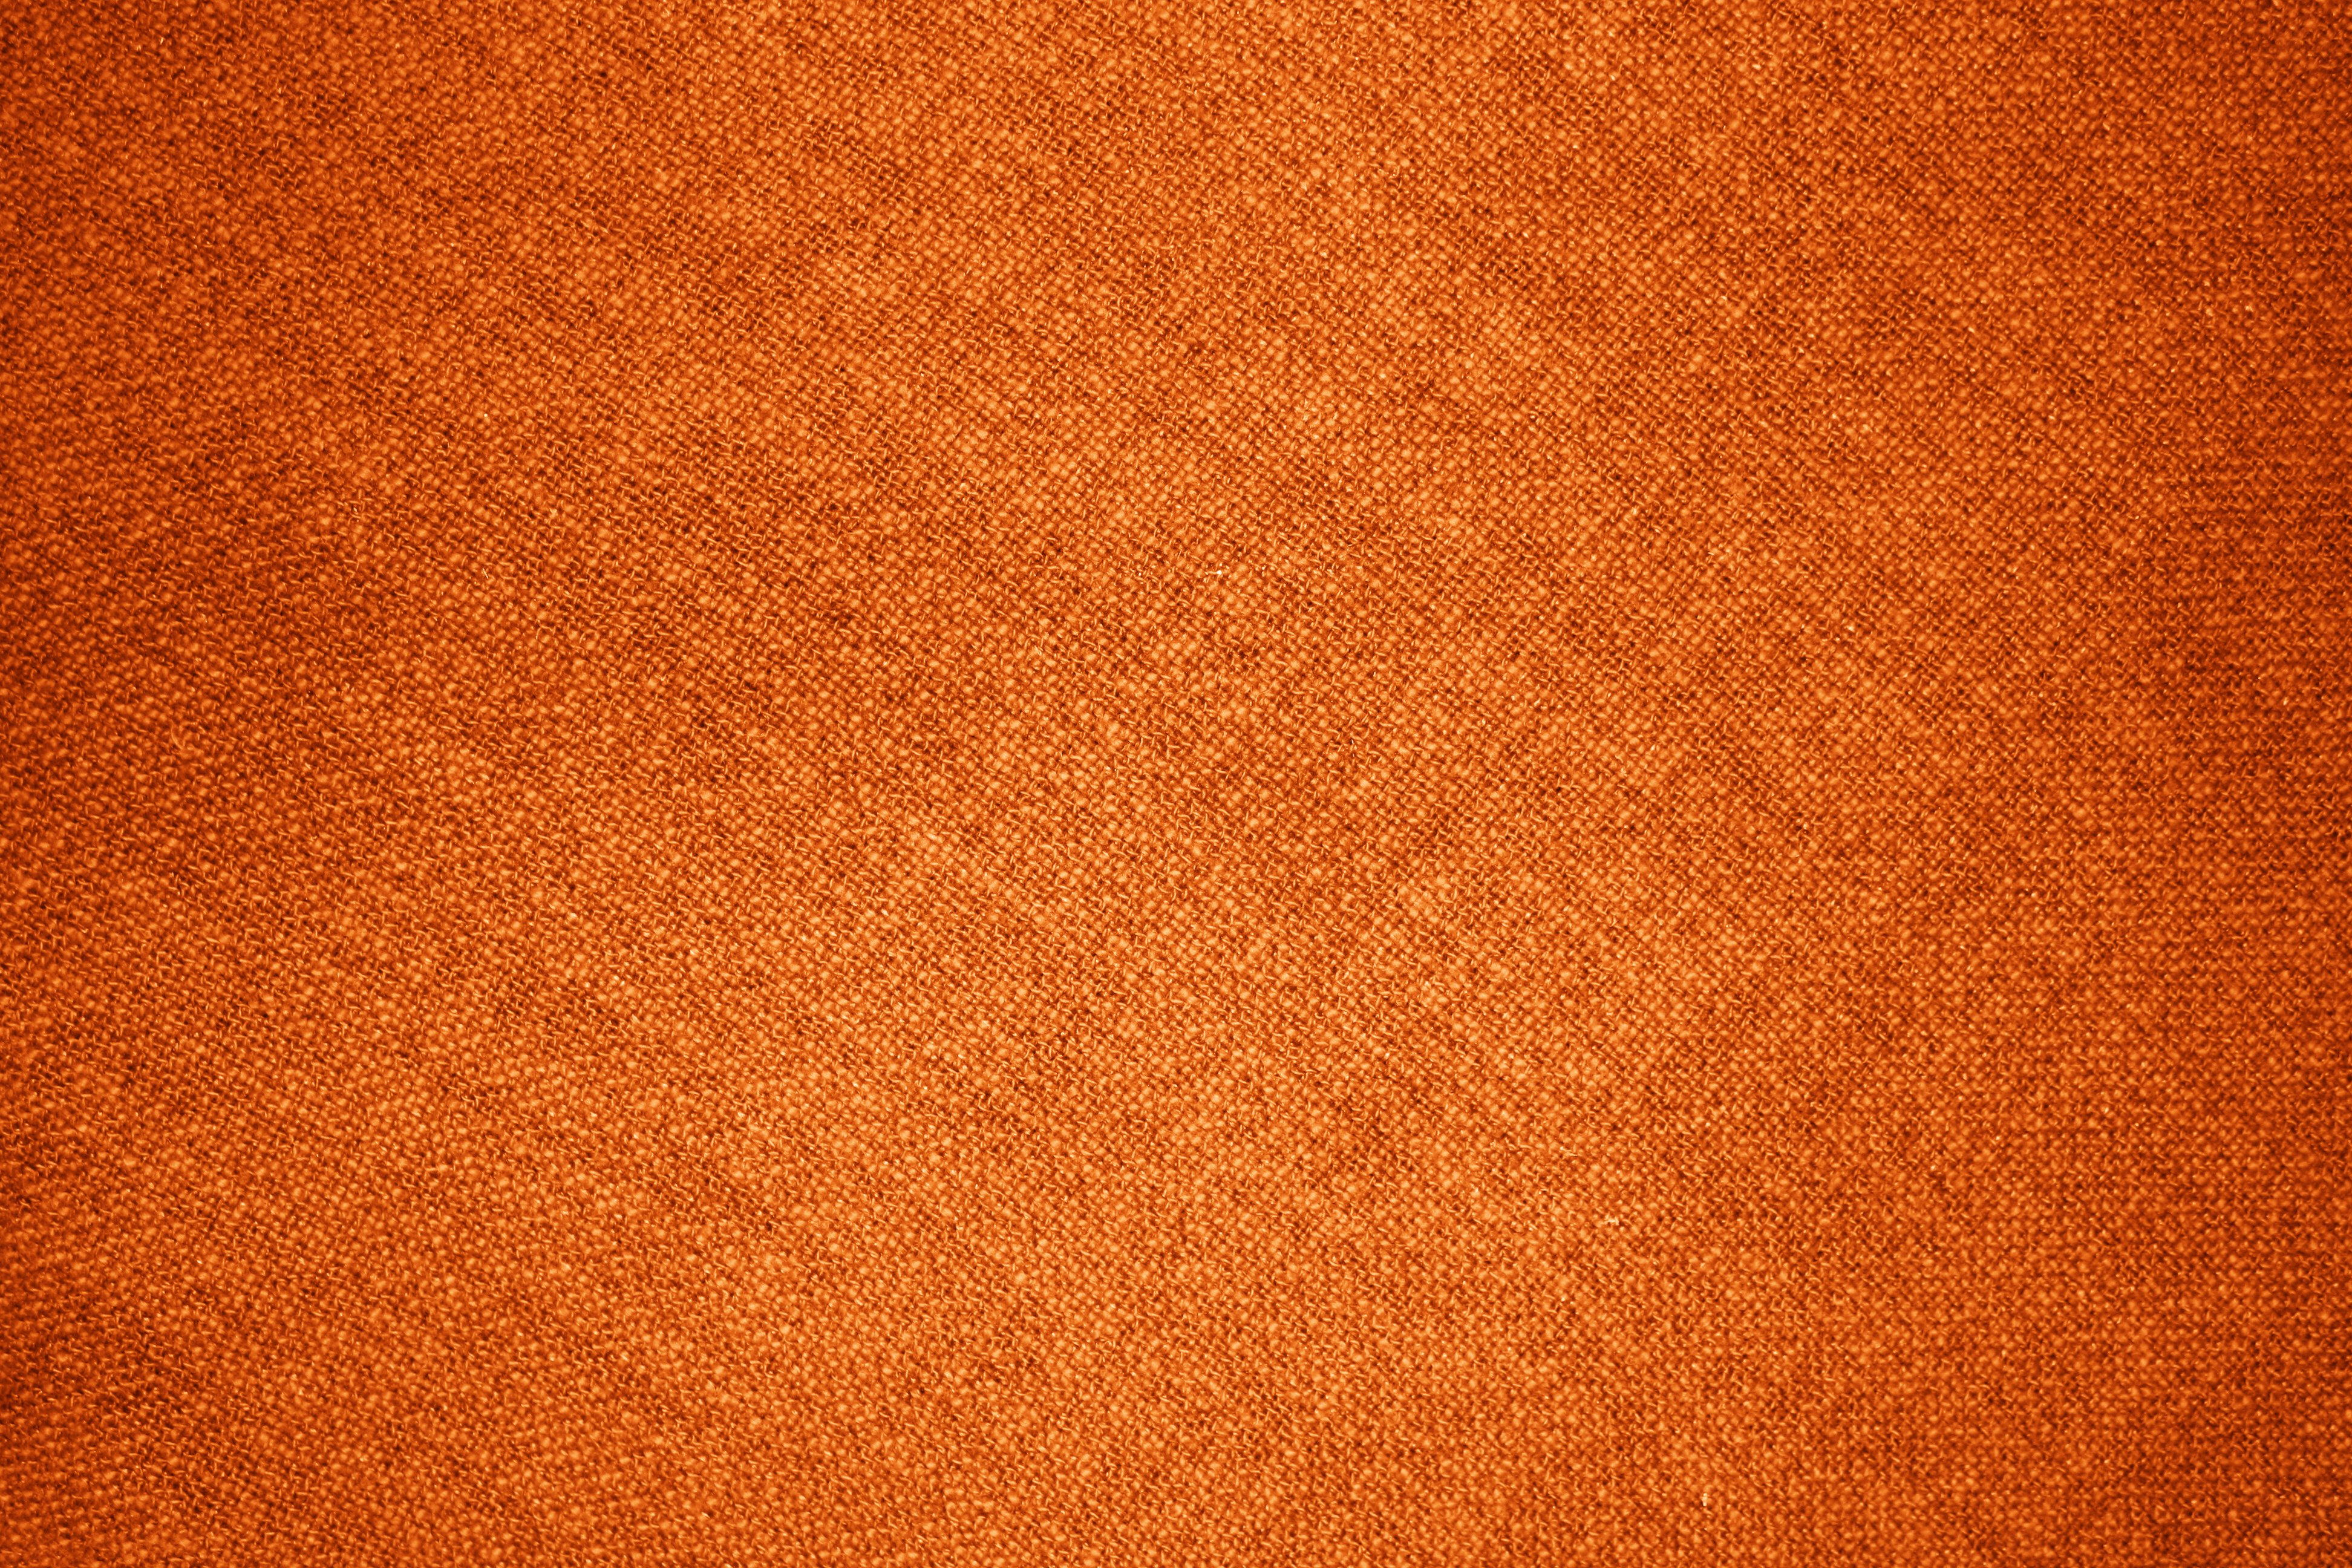 Pink fabric texture free high resolution photo dimensions 3888 - Orange Fabric Texture